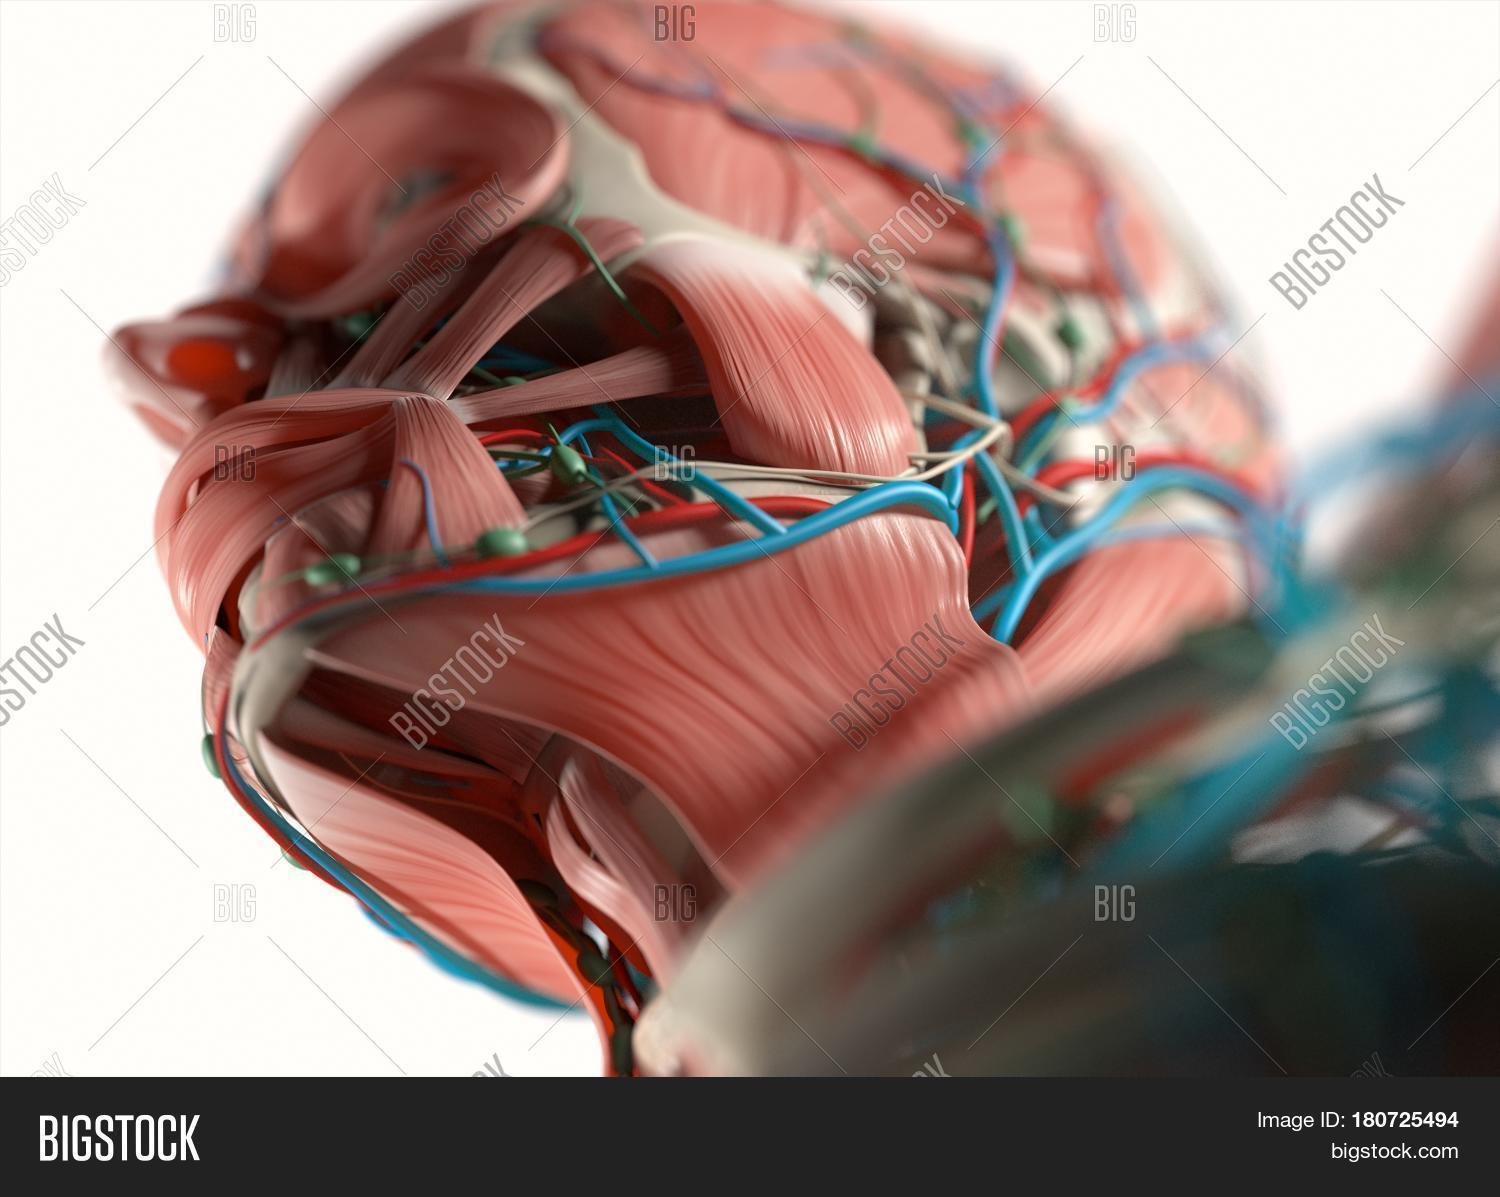 Anatomy Face. Muscular Image & Photo (Free Trial) | Bigstock